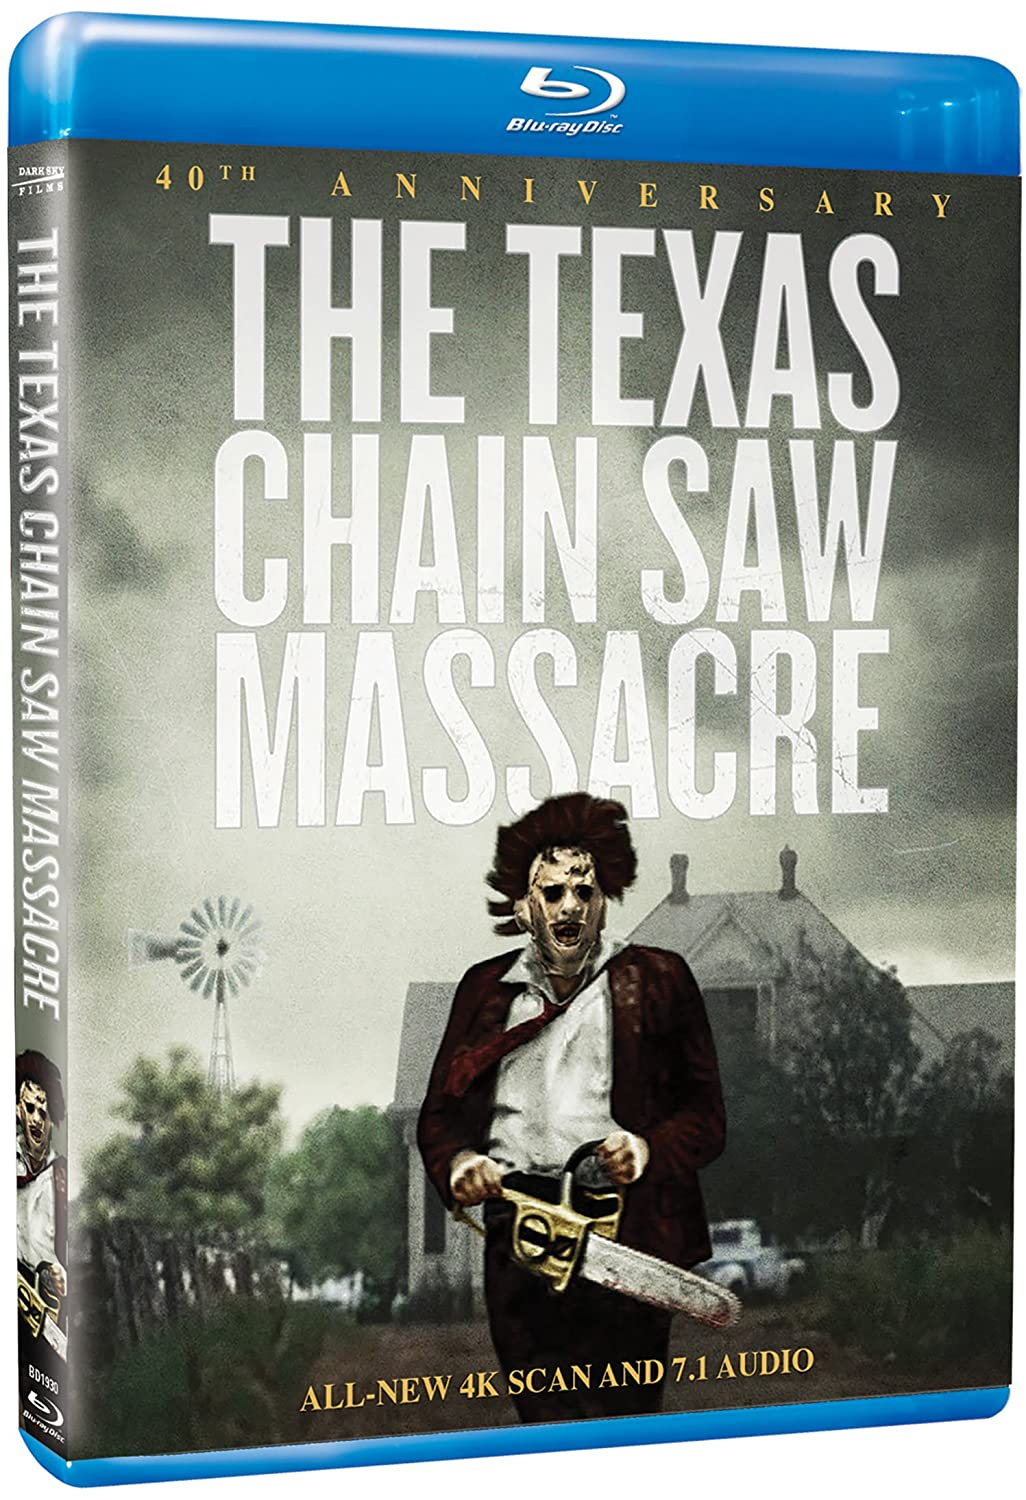 Texas Chain Saw Massacre, The: 40th Anniversary Edition [Blu-ray] Paul A. Partain Marilyn Burns Allen Danziger Paul A Partain